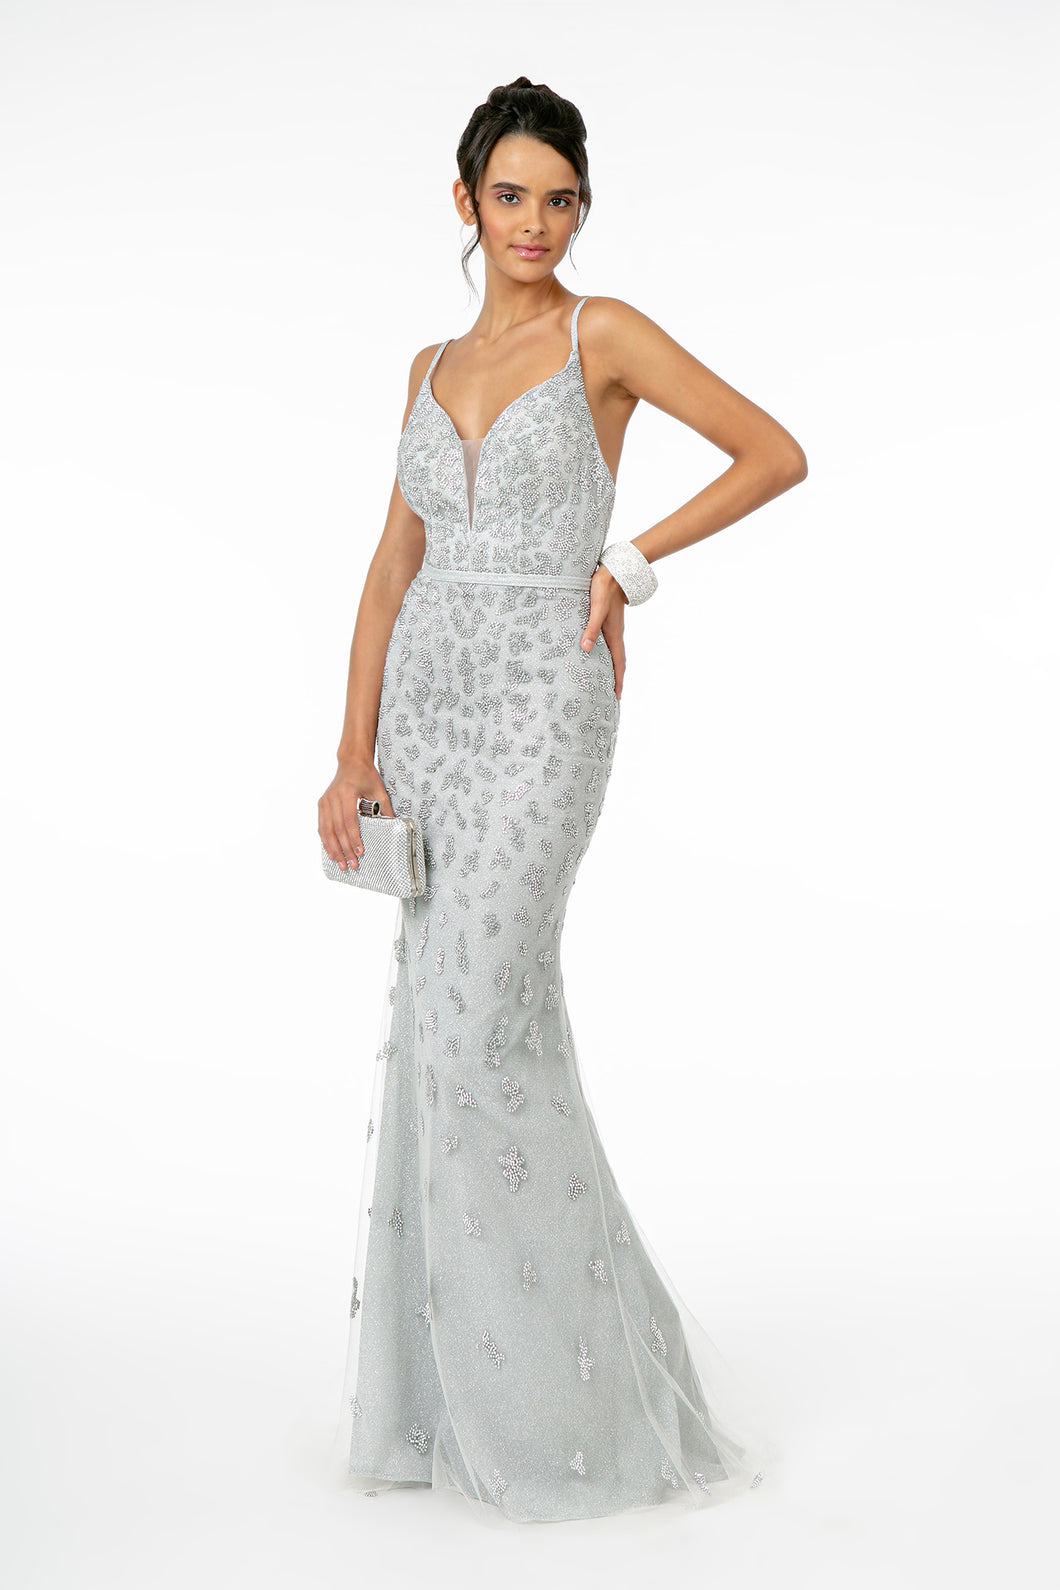 GL 2917 - Glittery Fit & Flare Prom Gown with Spaghetti Straps V-Neck & Open Back - Diggz Prom